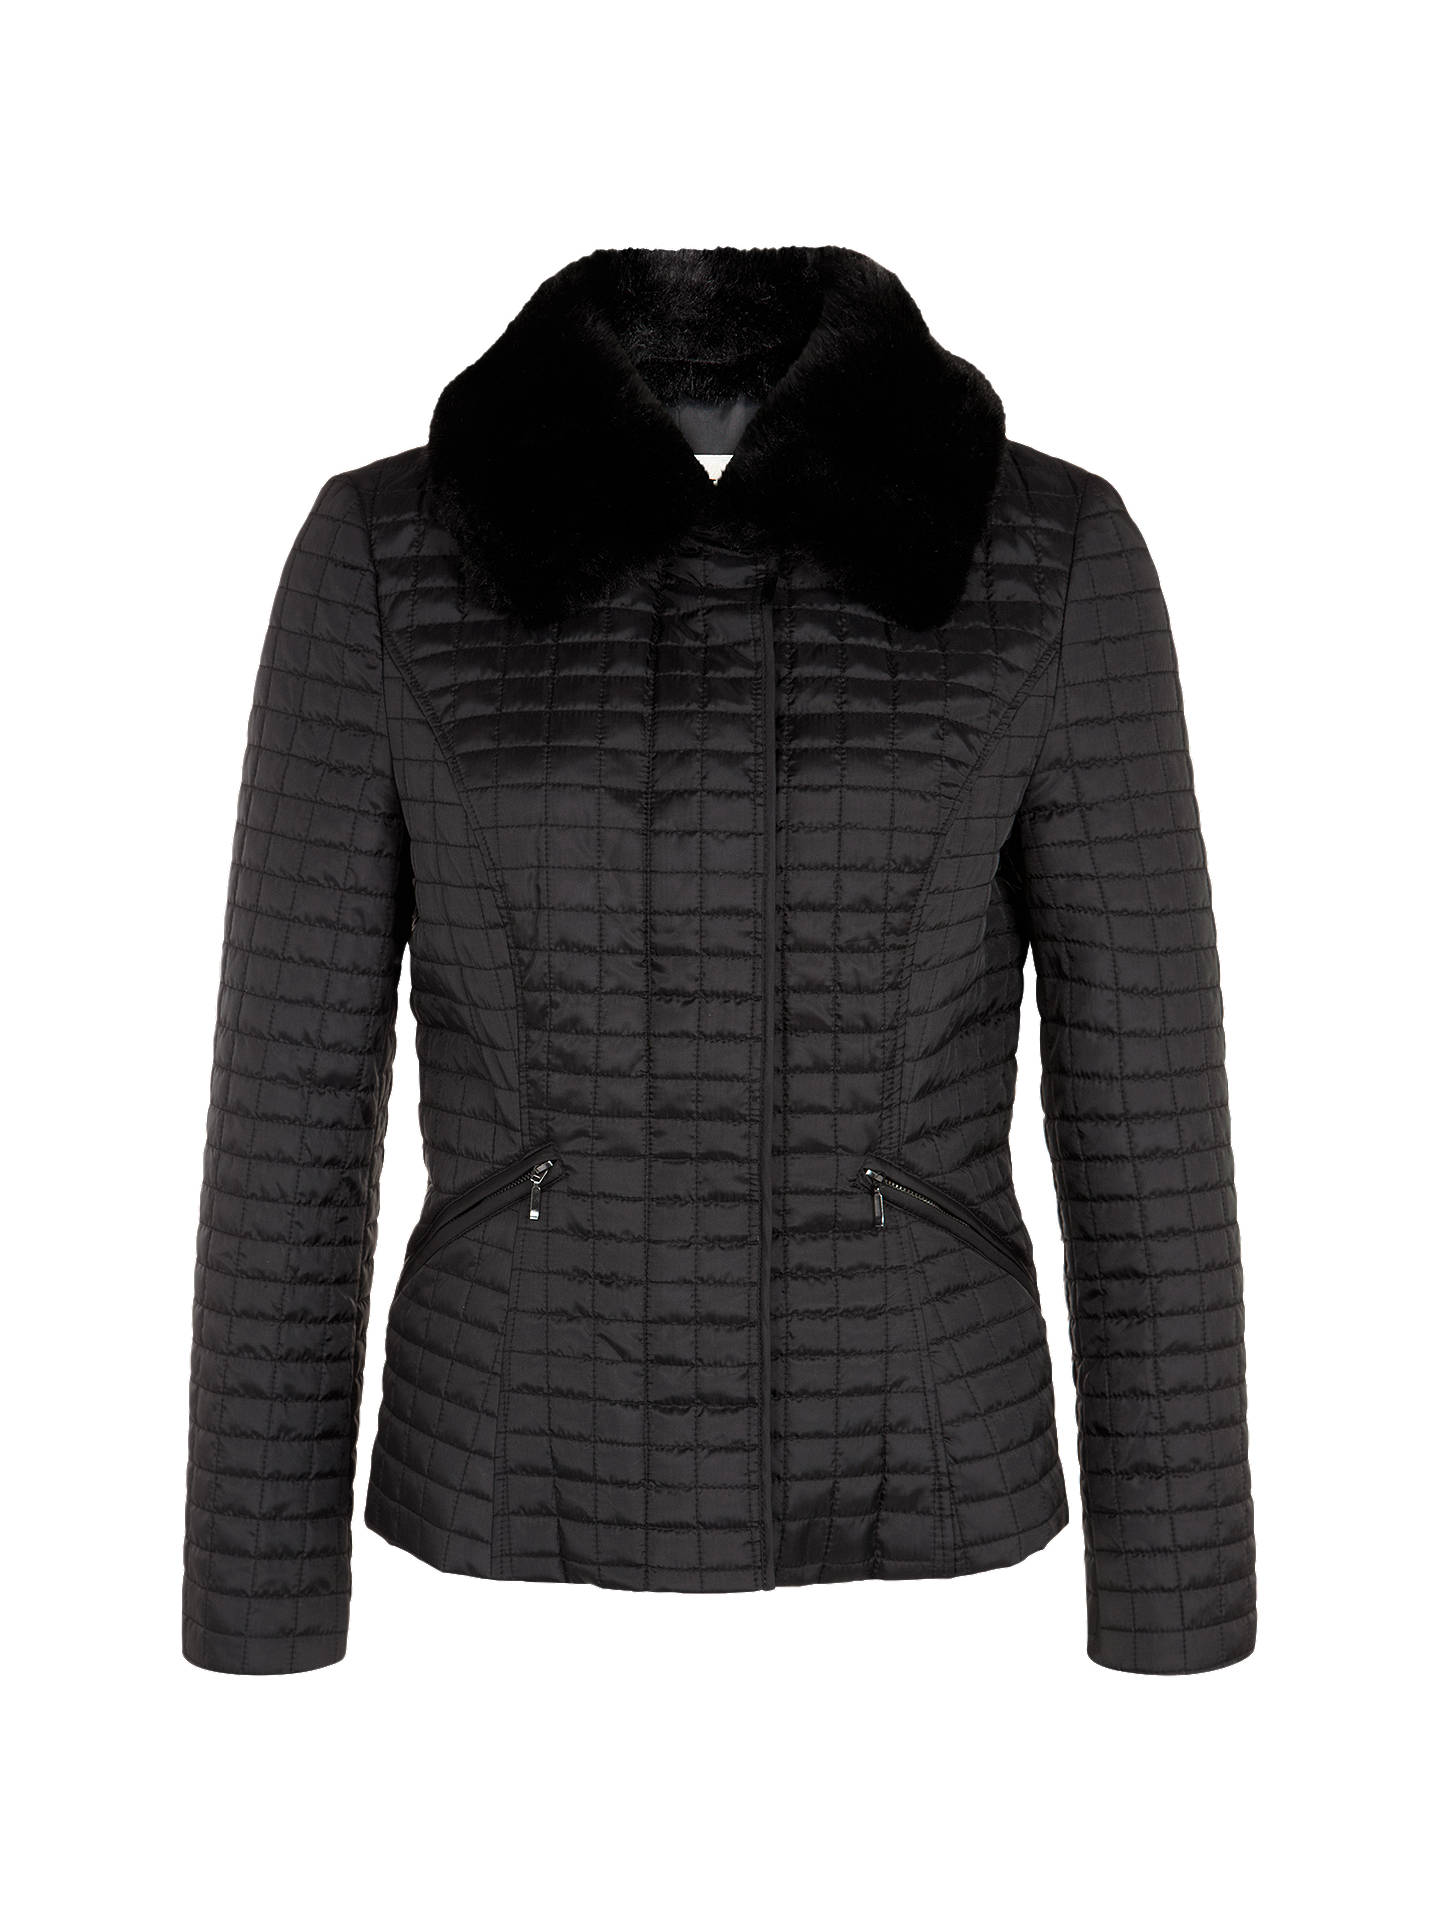 c87bfb13484b5 Buy Precis Petite Short Quilted Jacket with Faux Fur Collar, Black, 6  Online at ...